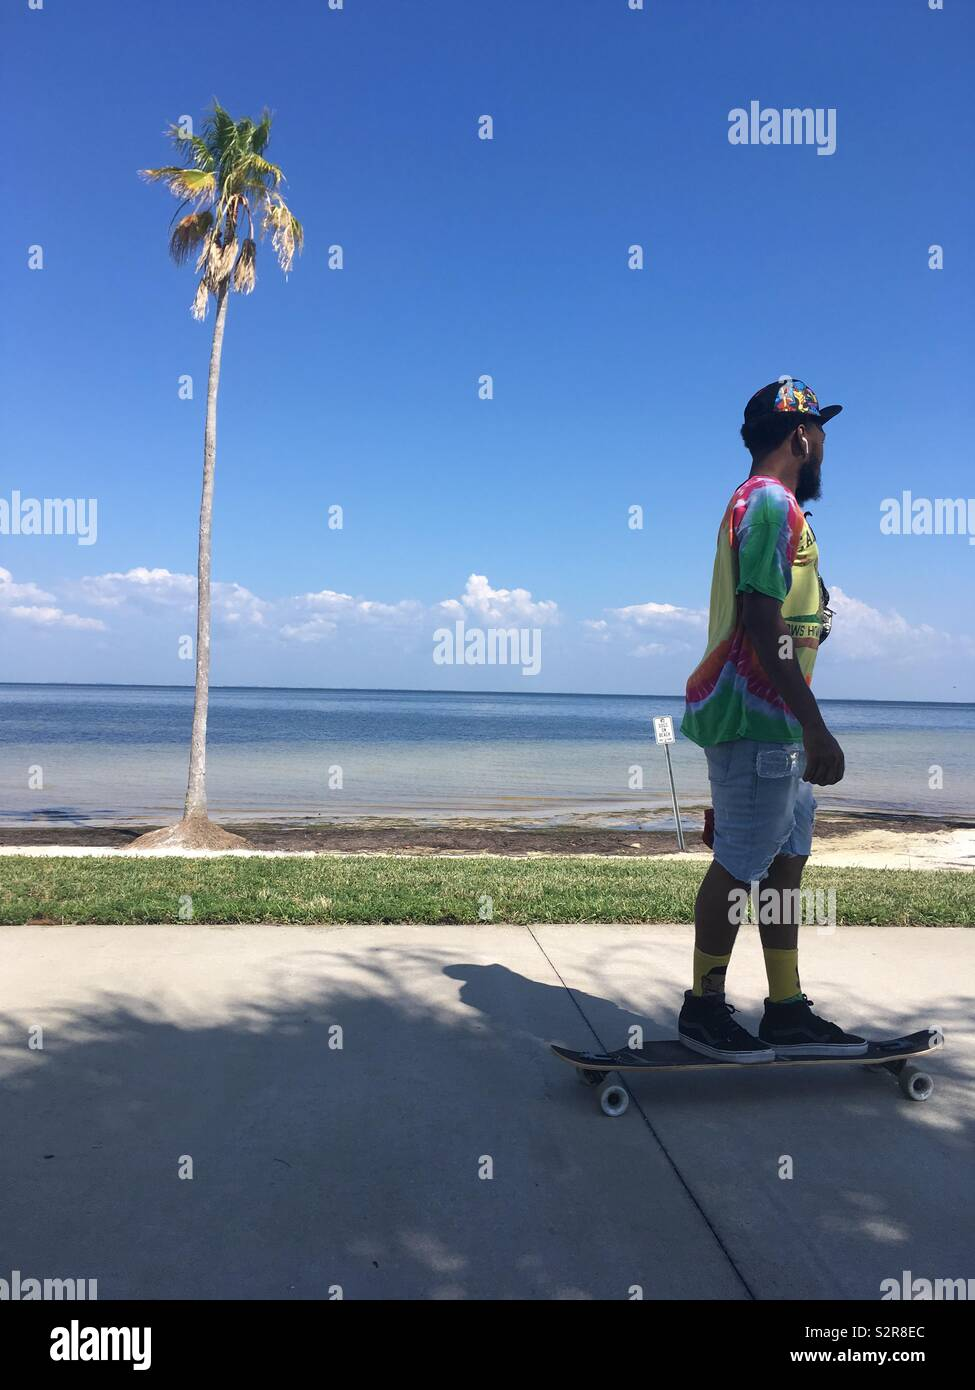 Man in colourful top on skateboard by a palm tree and the sea - Stock Image